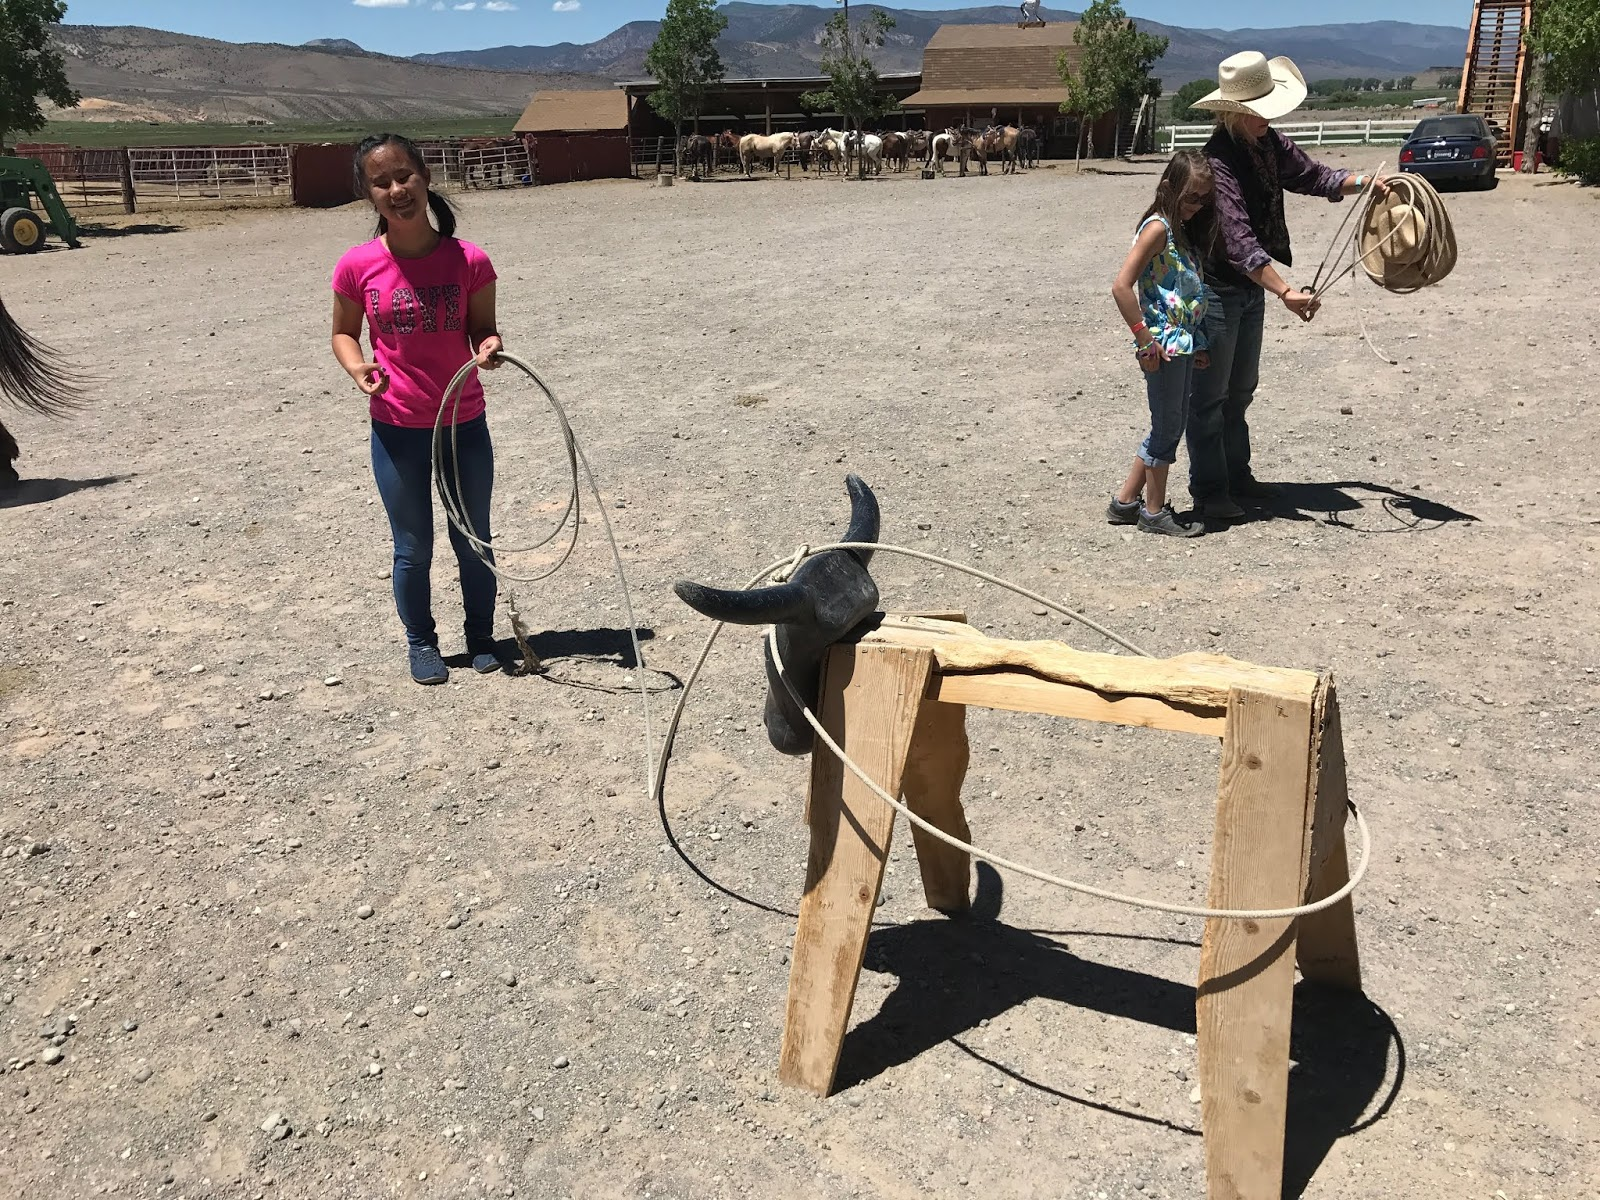 Female student has roped a practice bull with her lasso while another student gets up close to a lasso with a staff member.